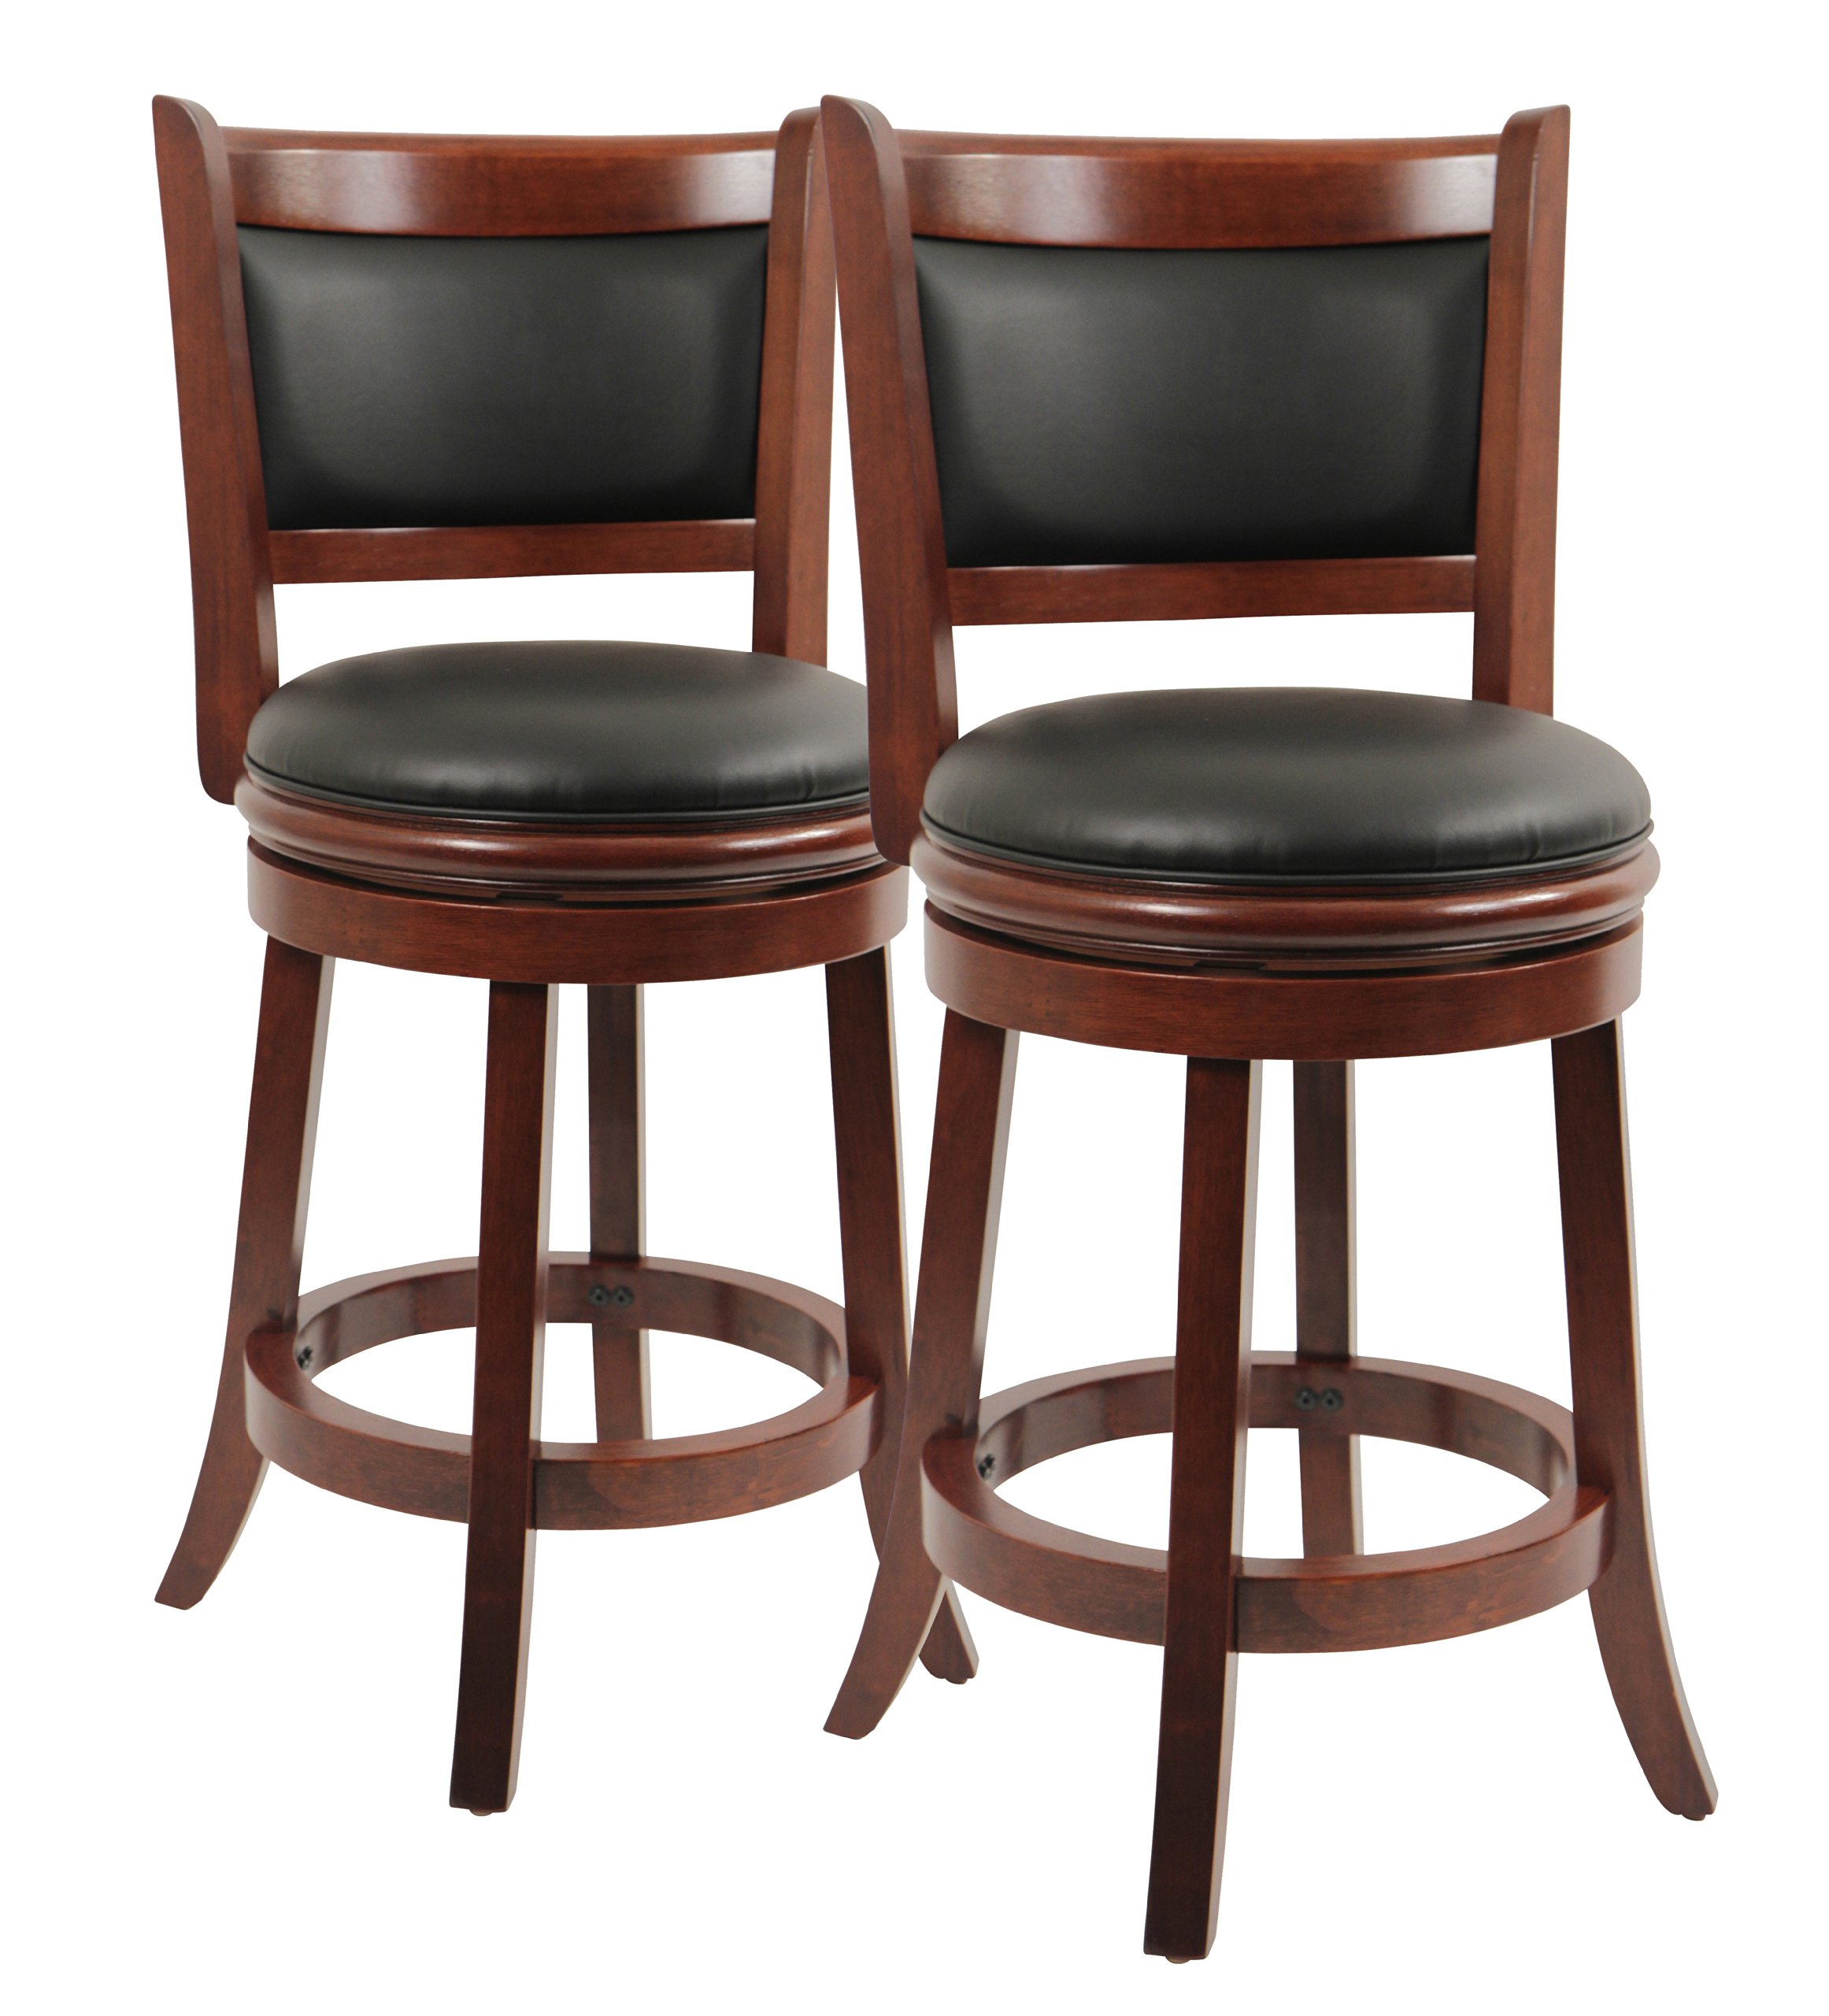 360 swivel kitchen bar stool 24 dining chair geniun for Kitchen swivel bar stools